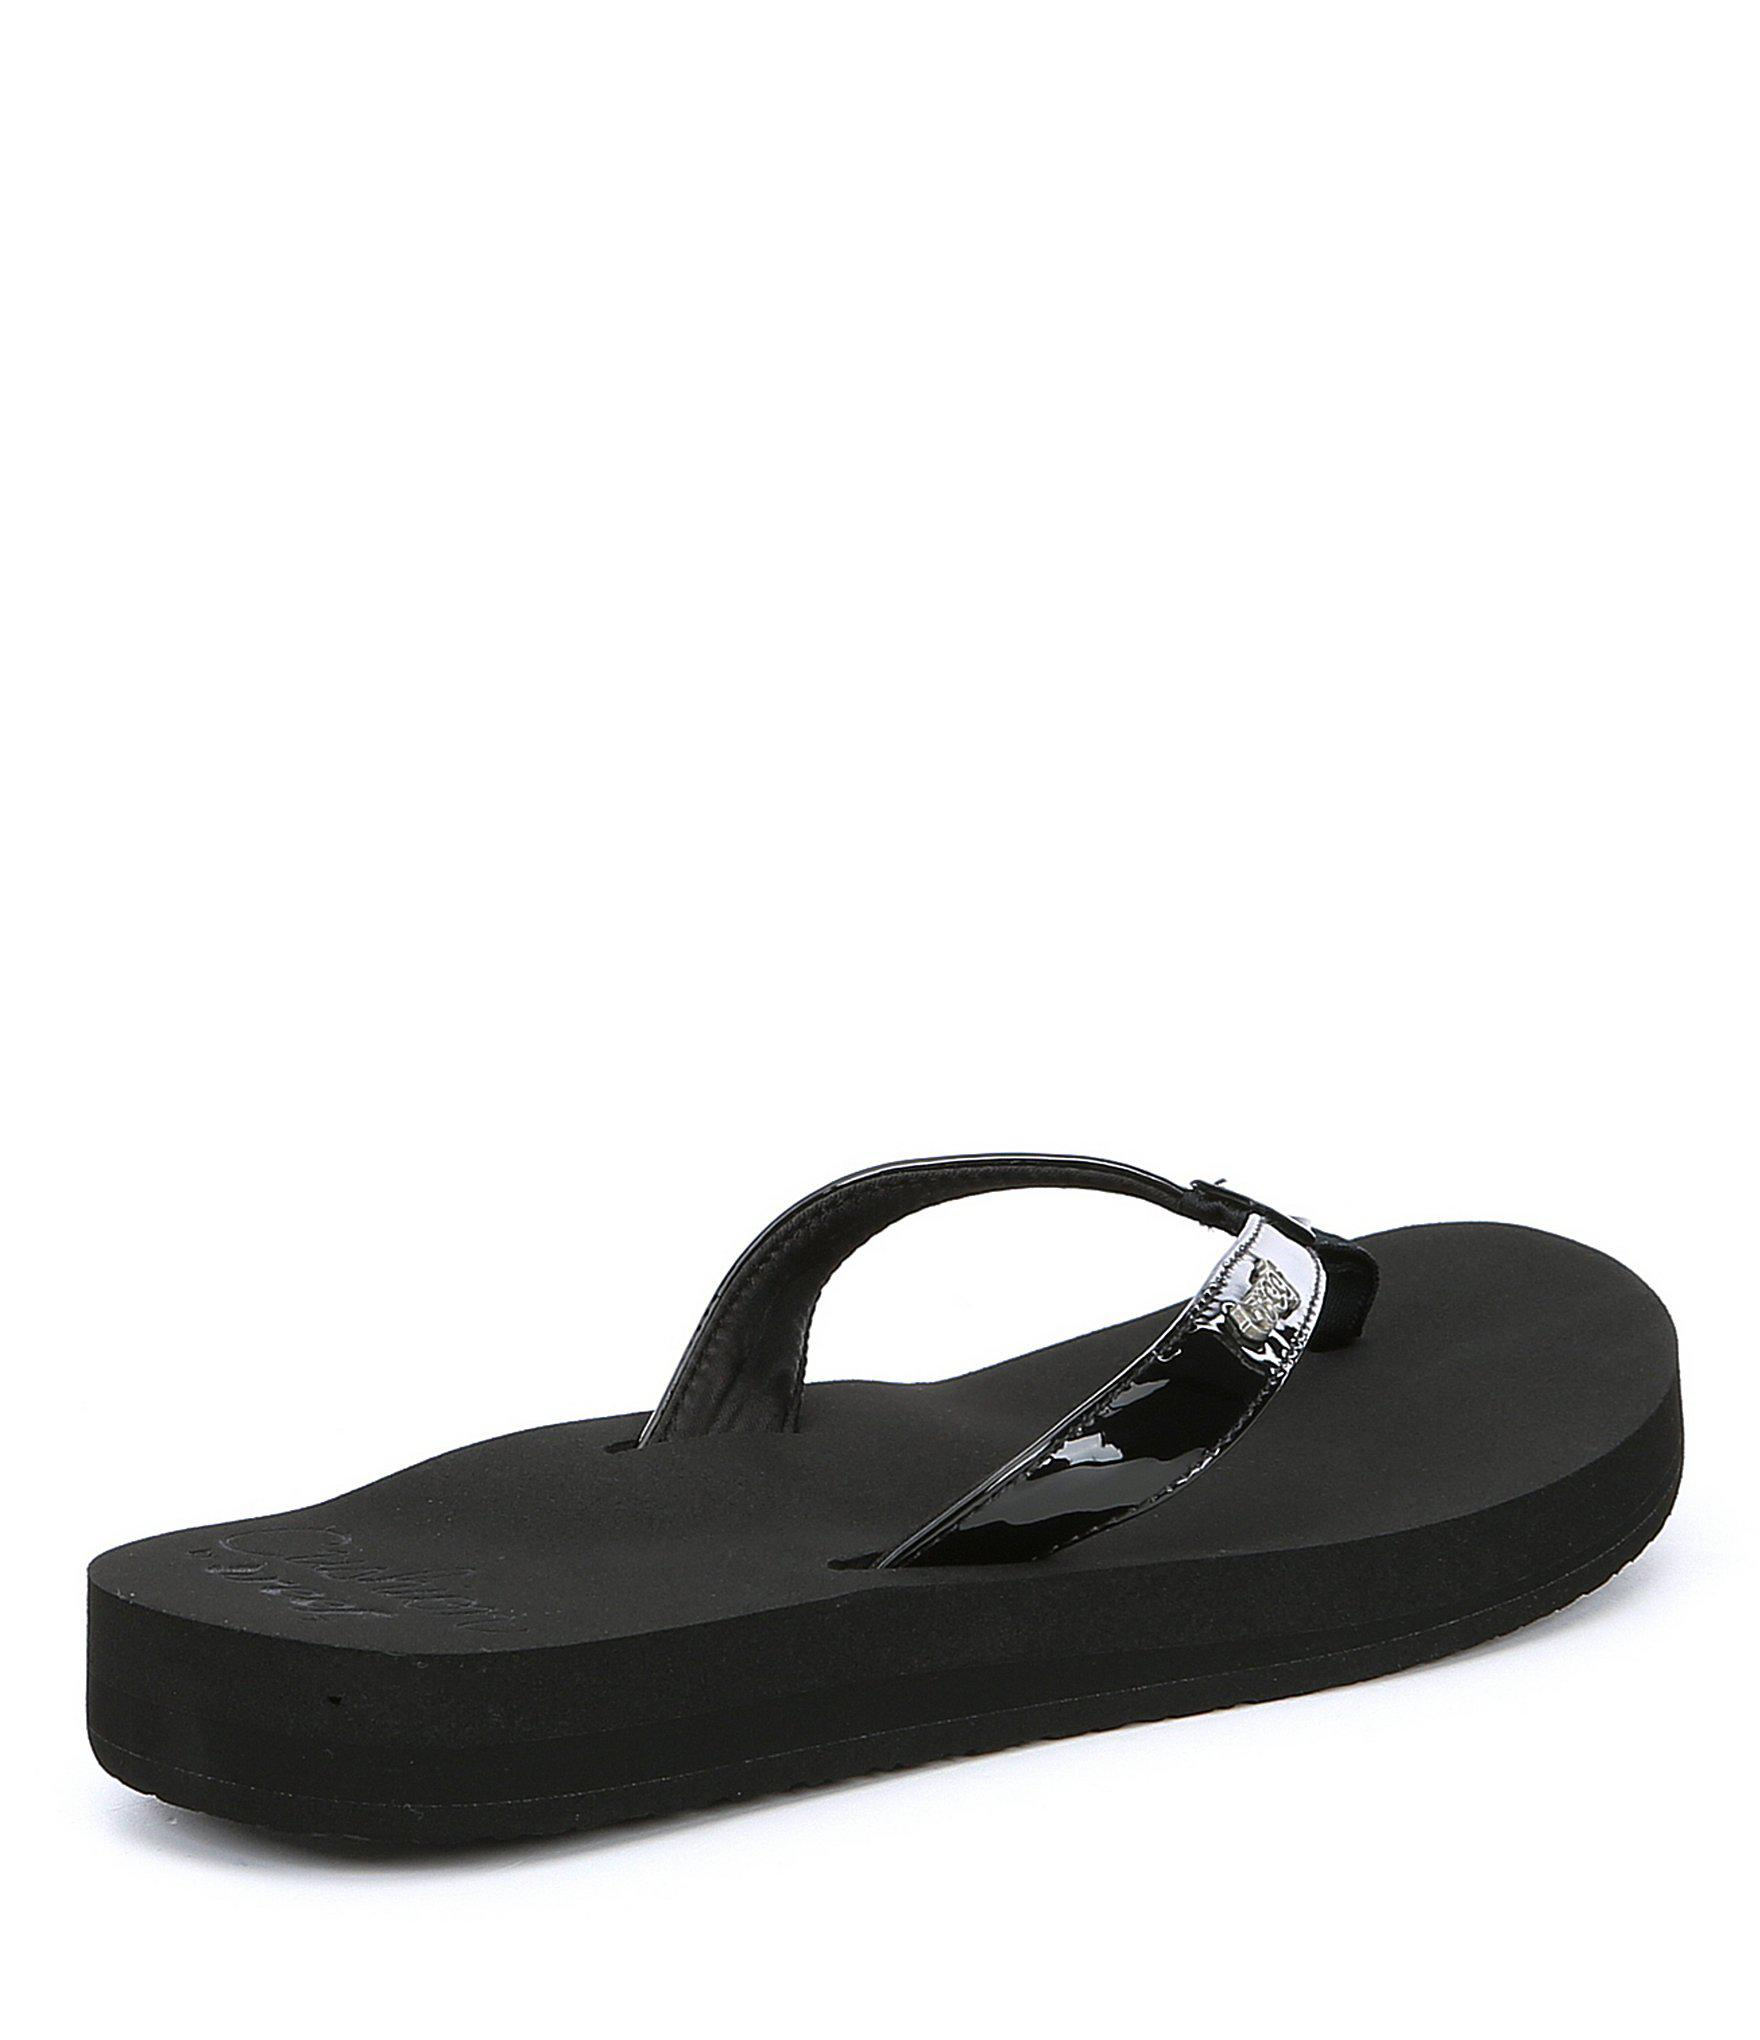 0c7e5253b89bd2 Reef - Black Cushion Luna Synthetic Patent Flip Flops - Lyst. View  fullscreen